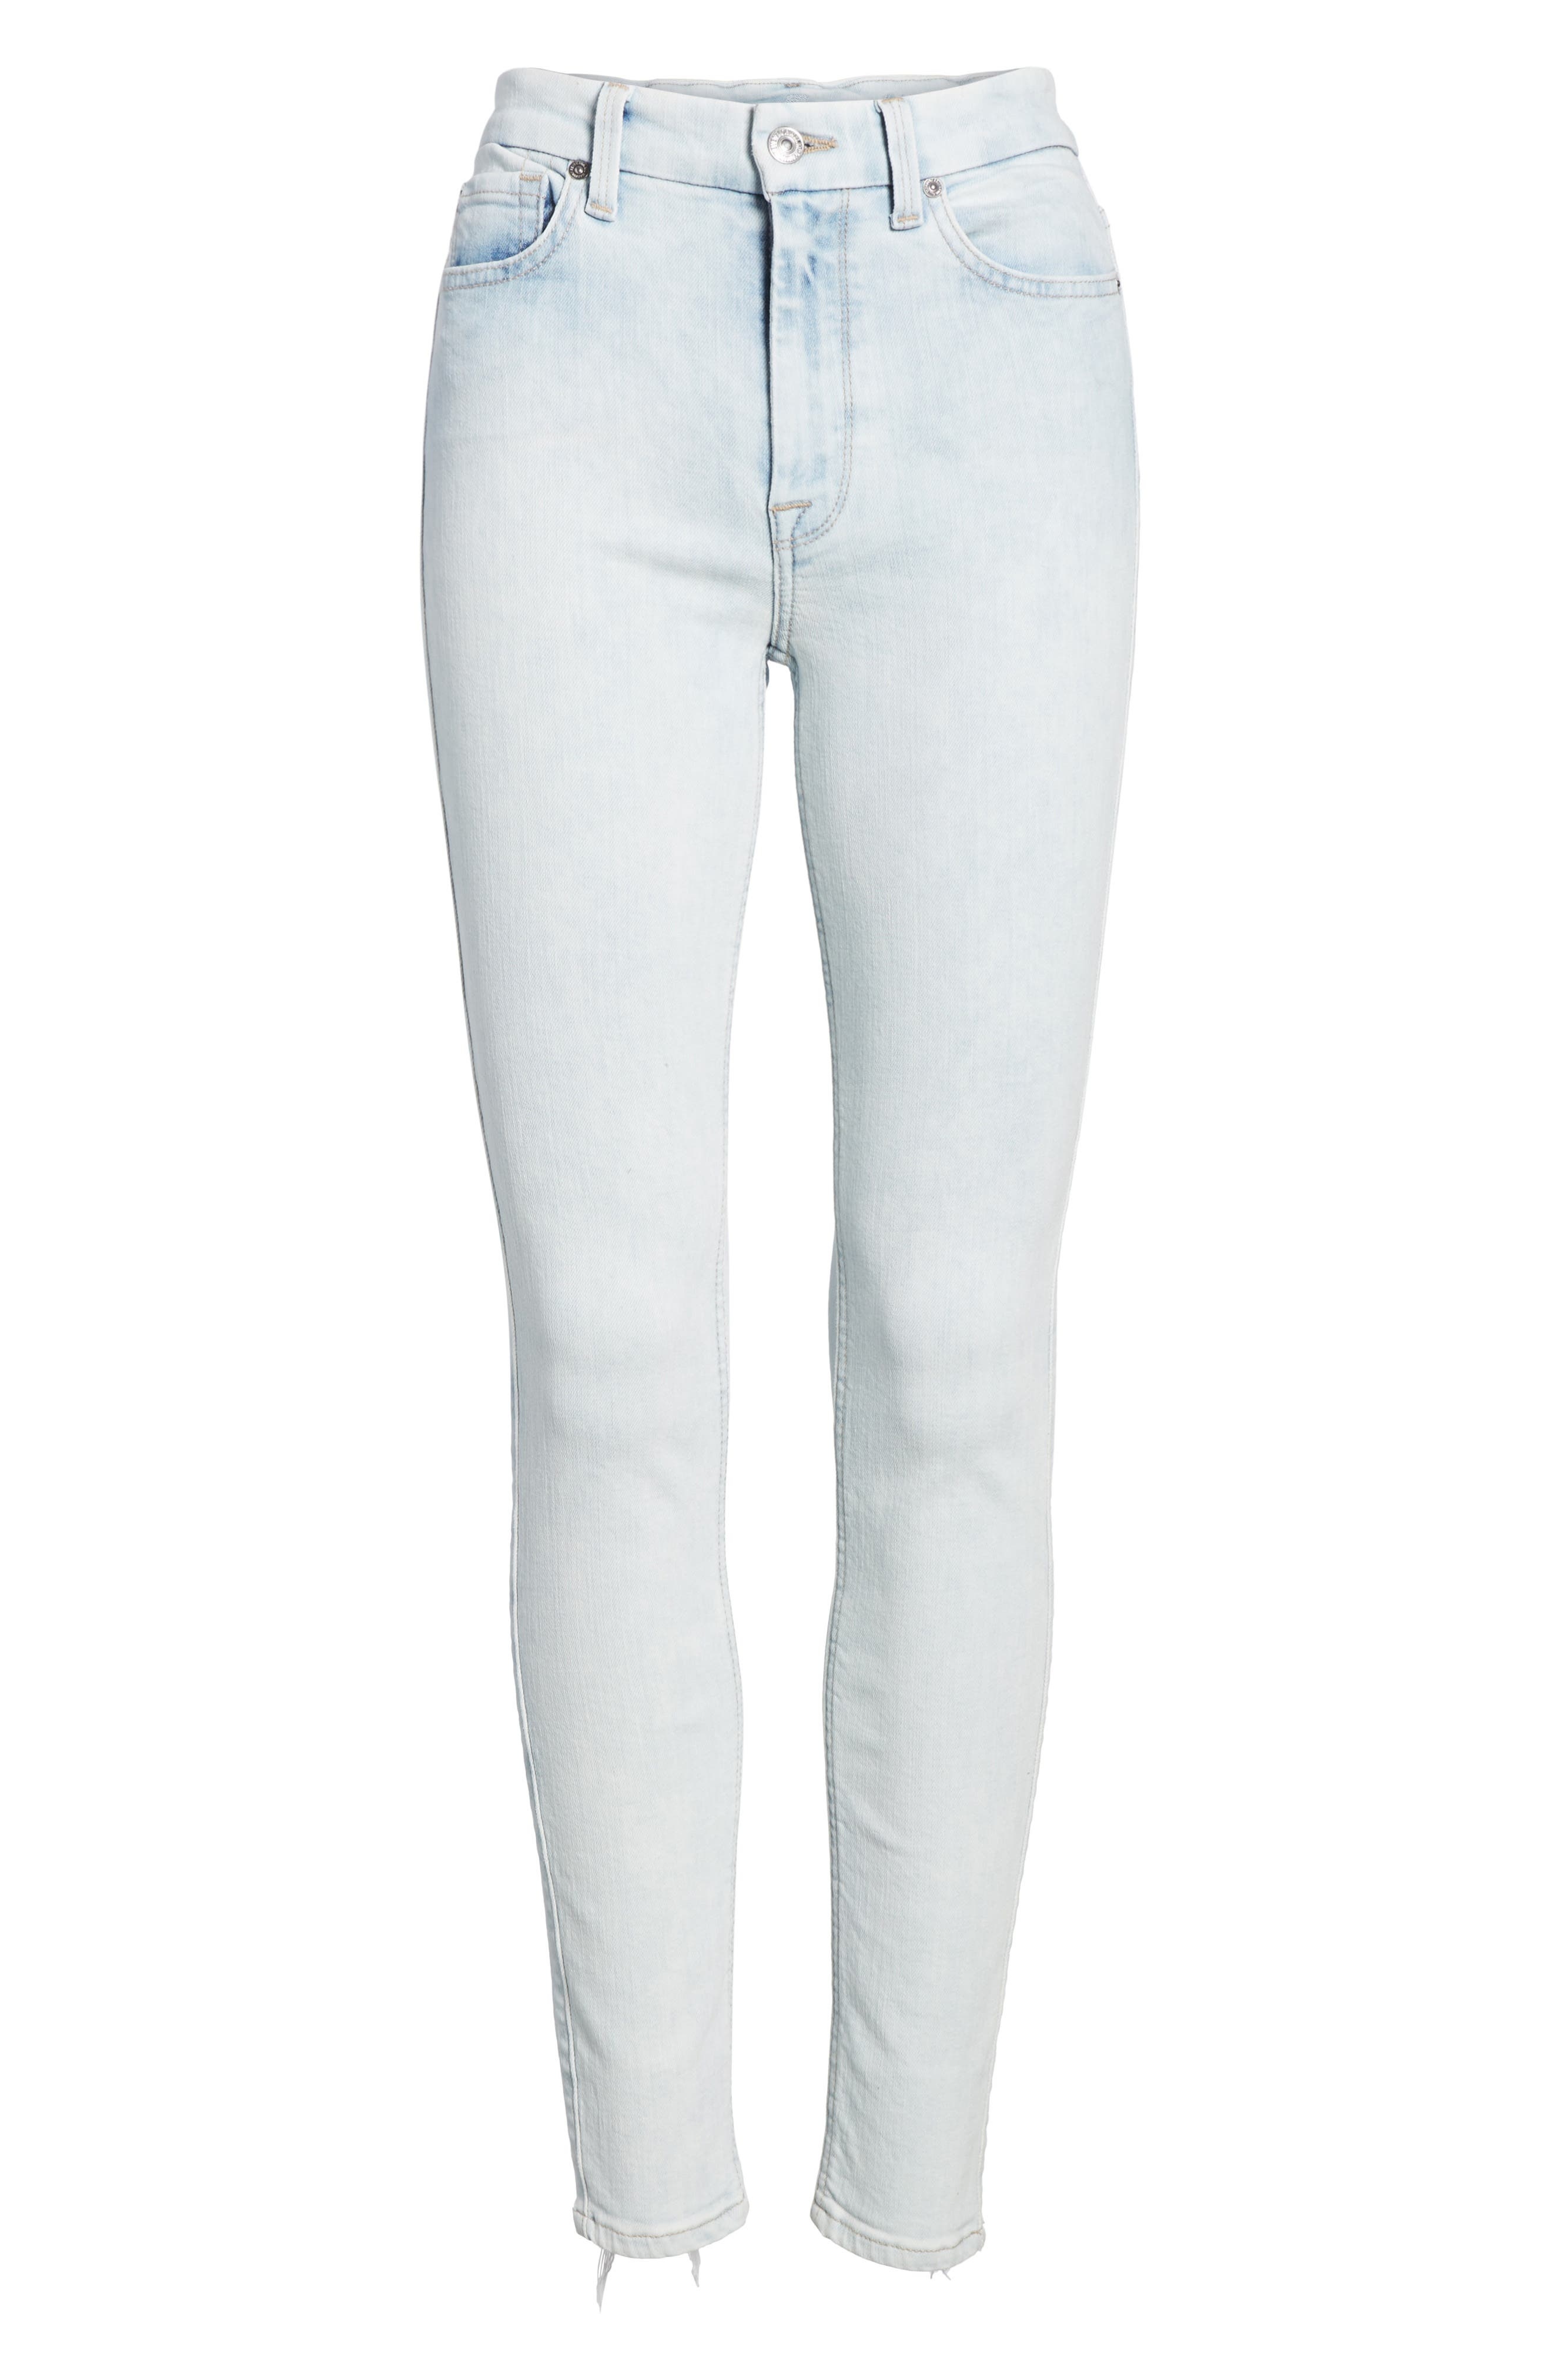 High Waist Ankle Skinny Jeans,                             Alternate thumbnail 6, color,                             Bleached Out